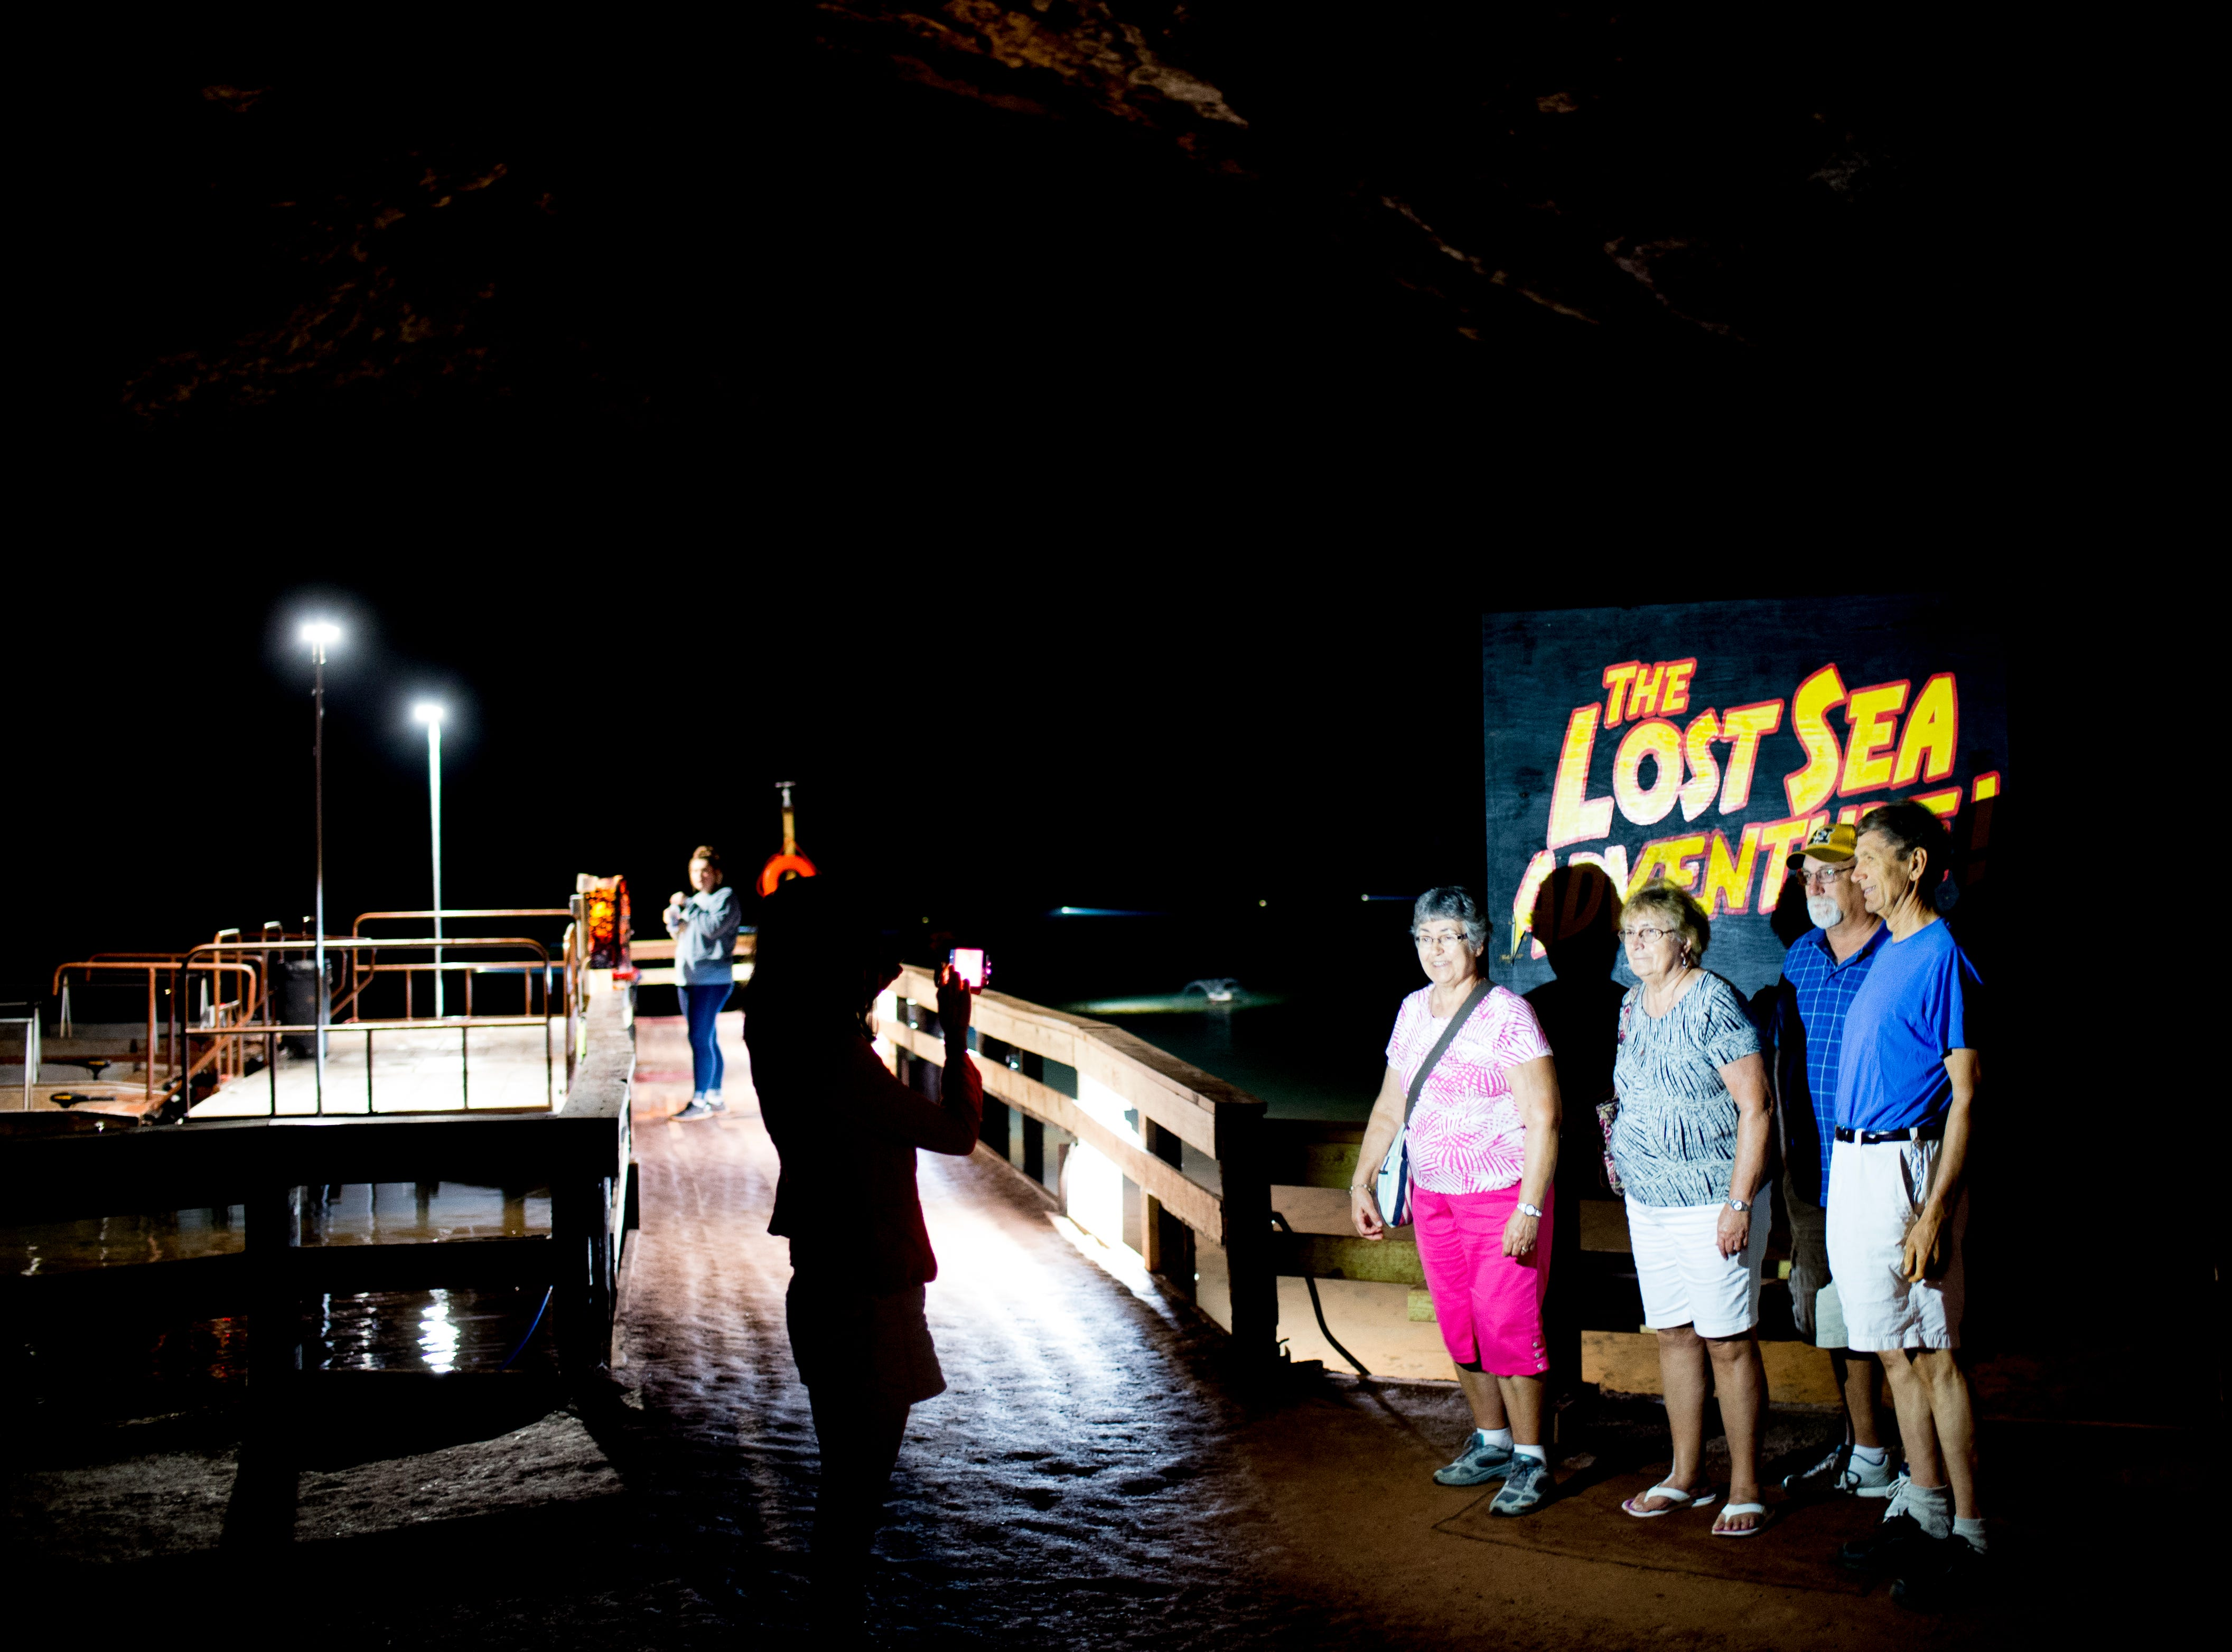 Visitors snap a photo beside the lake at the Lost Sea Adventure underground cave attraction outside of Sweetwater, Tennessee on Wednesday, August 15, 2018. The cave system dates back some 20,000 years and today features points of interests like an old moonshine still, rock formations, Confederate Army graffiti and the popular boat ride in a natural lake stocked with 200 rainbow trout.